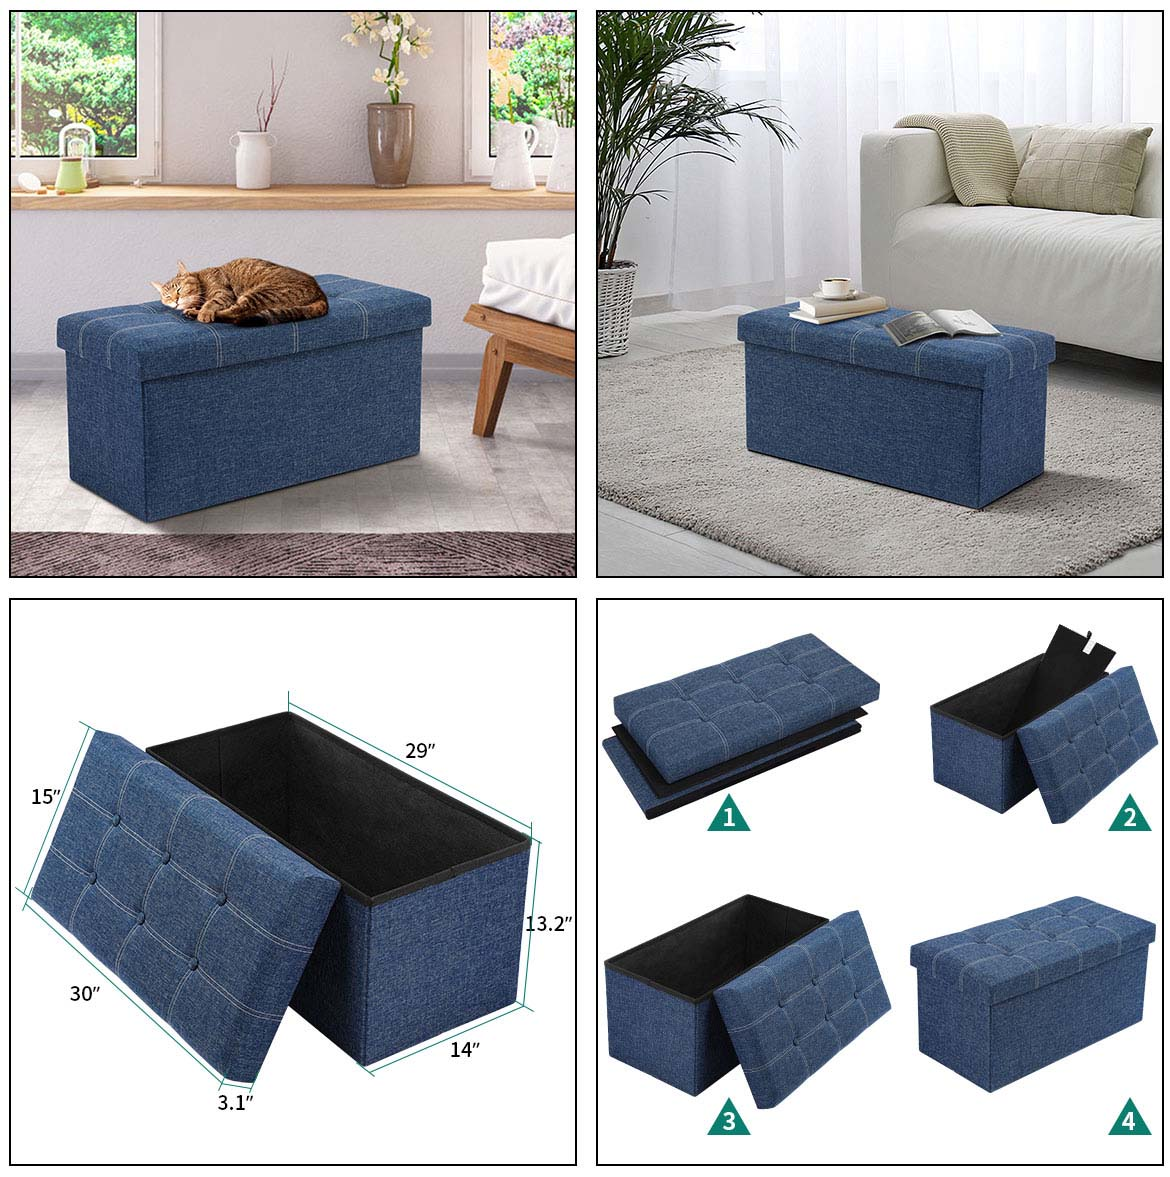 sizes and instruction of storage ottoman bench